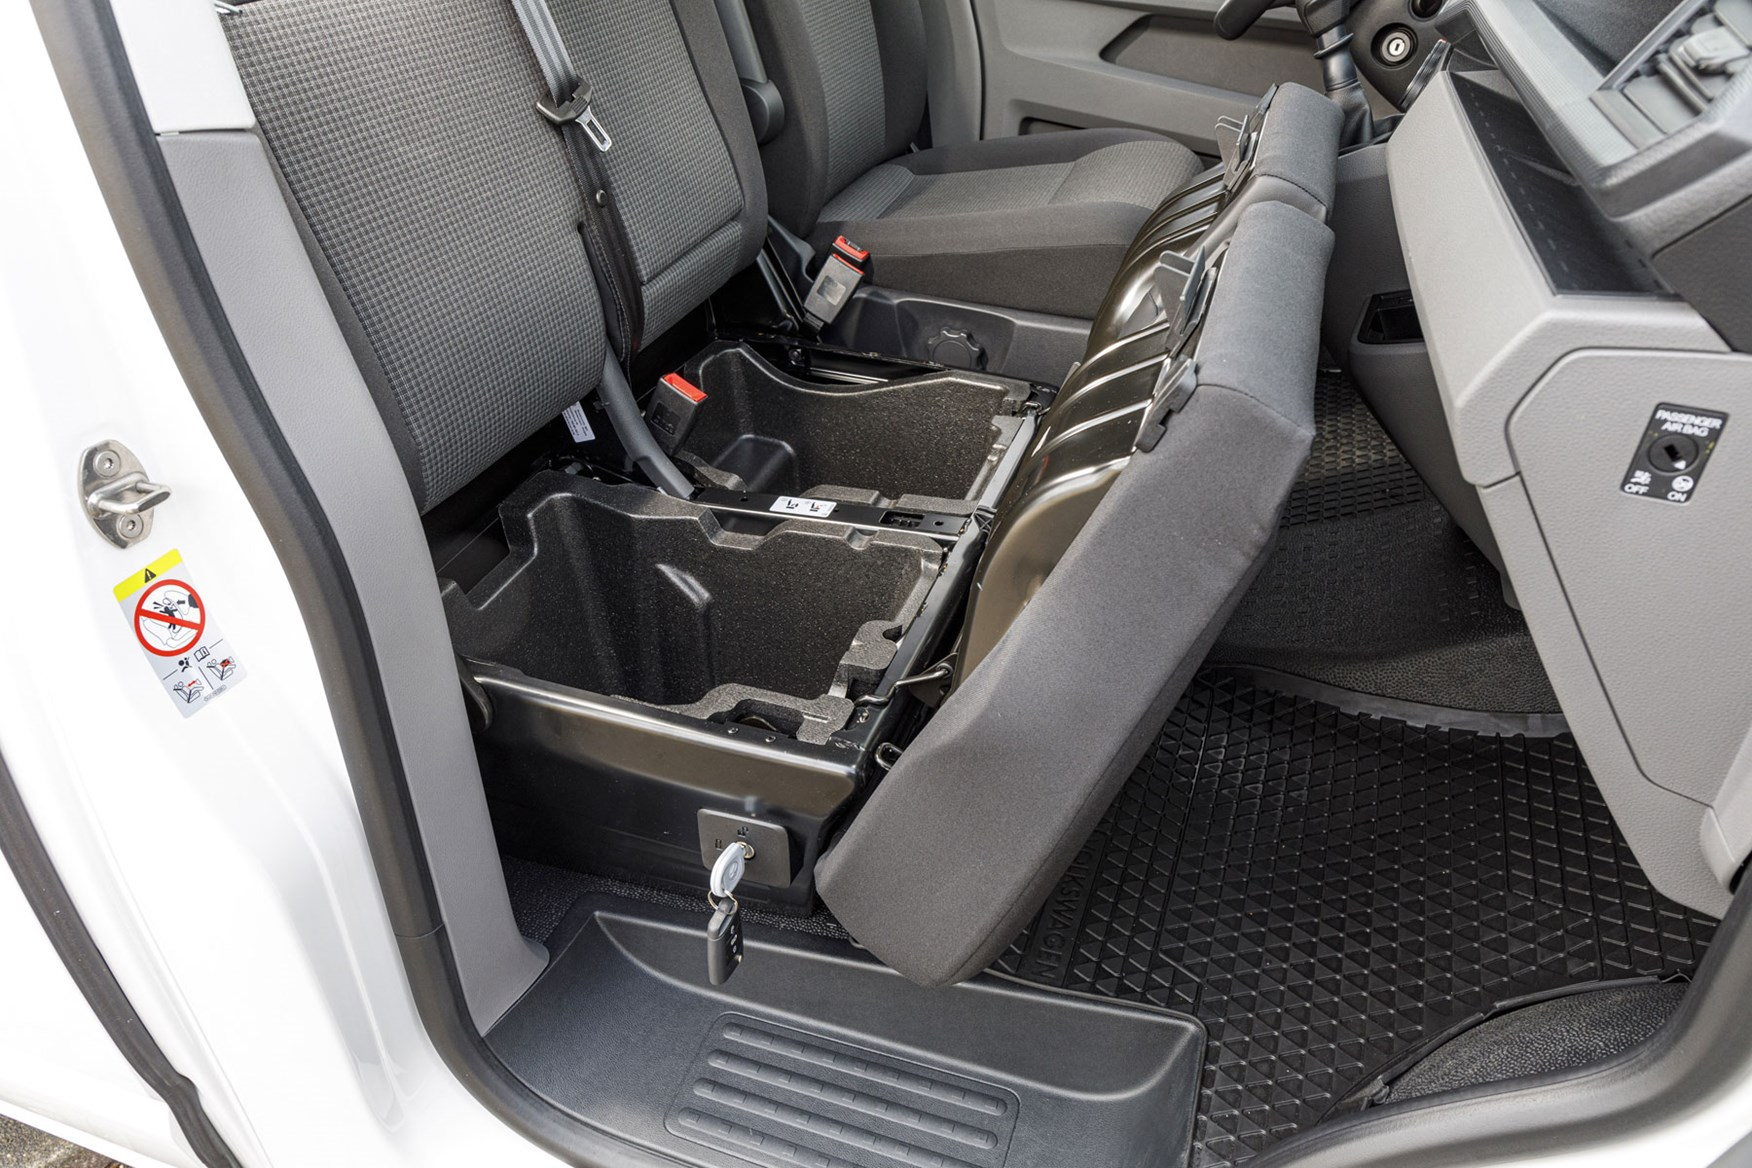 VW Transporter review - T6.1 2019 facelift, cab interior showing lockable under-seat storage